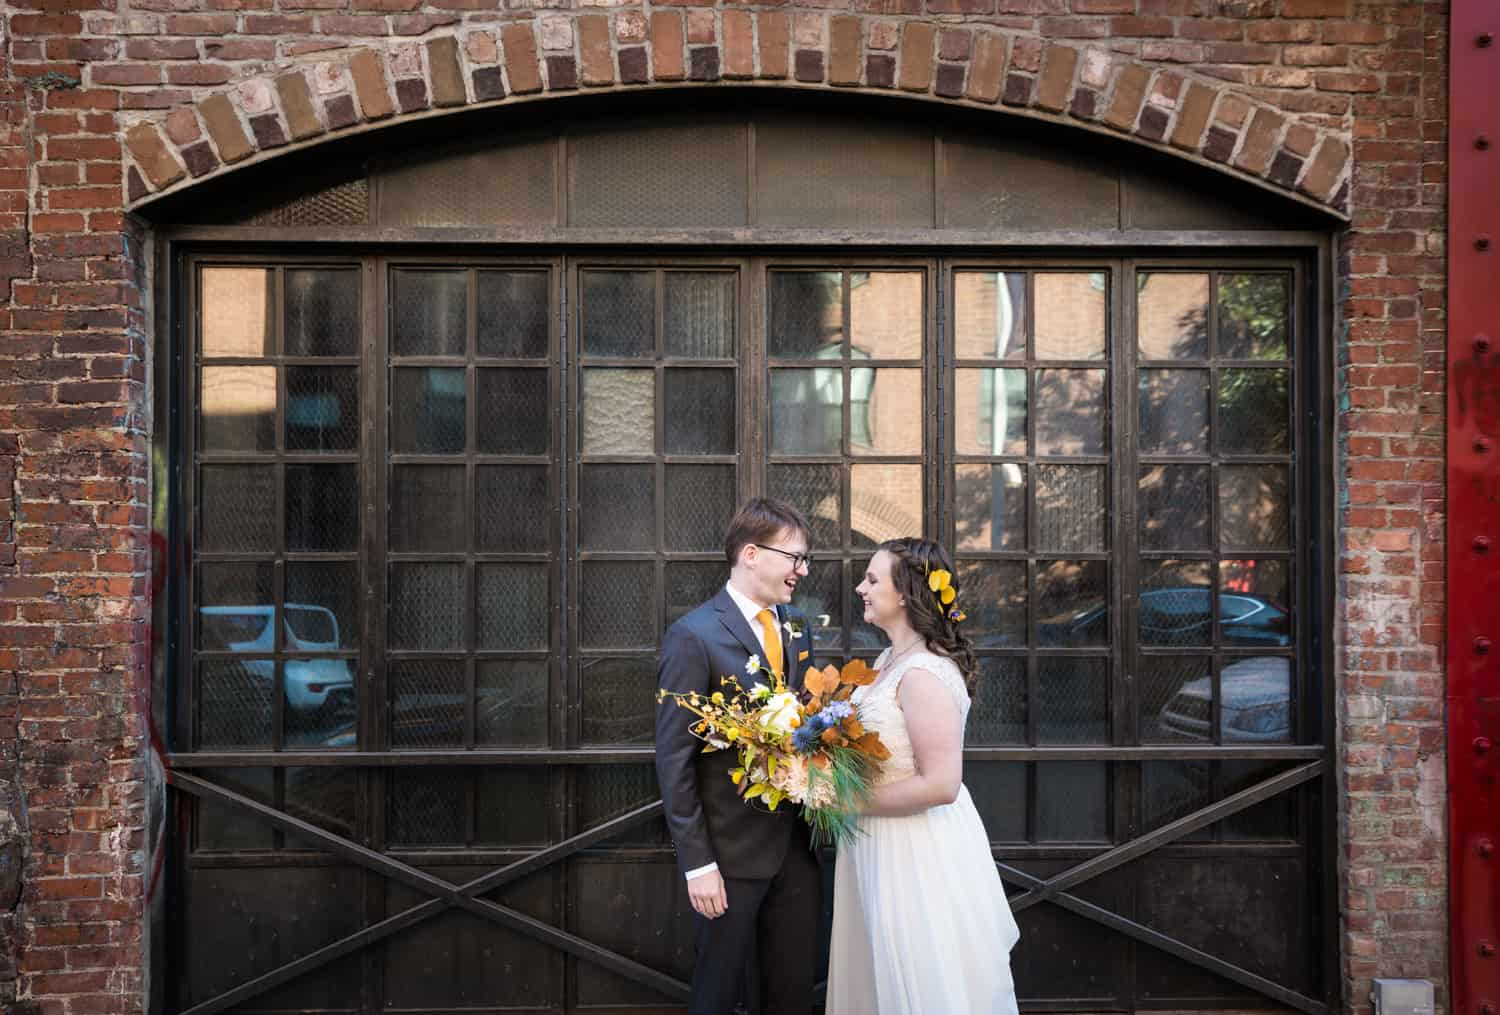 Bride and groom in front of arched window for an article on Covid-19 wedding planning